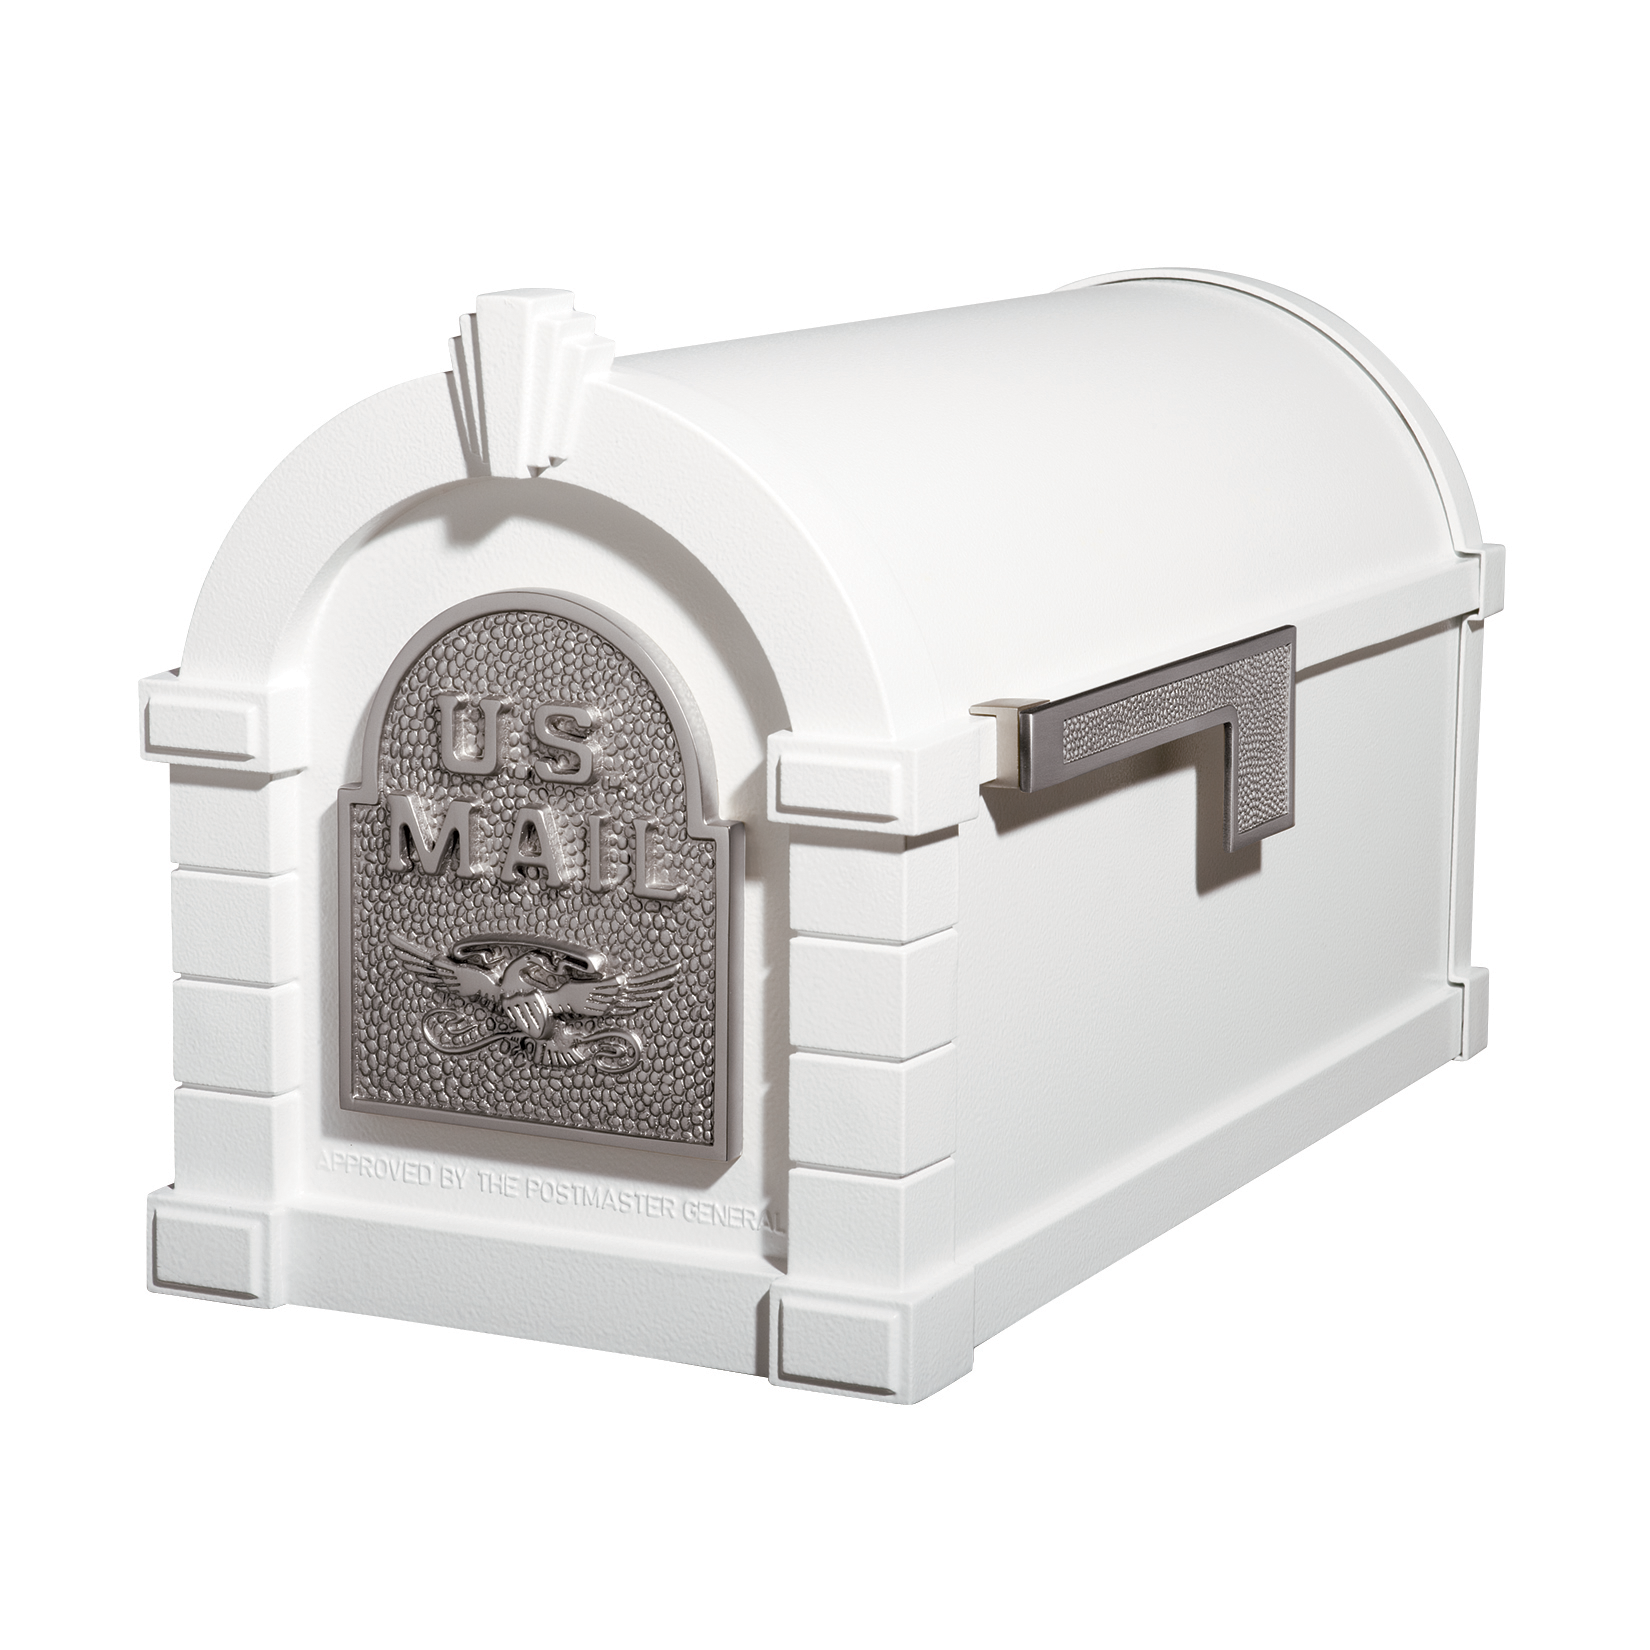 Gaines Eagle Keystone MailboxesWhite with Satin Nickel